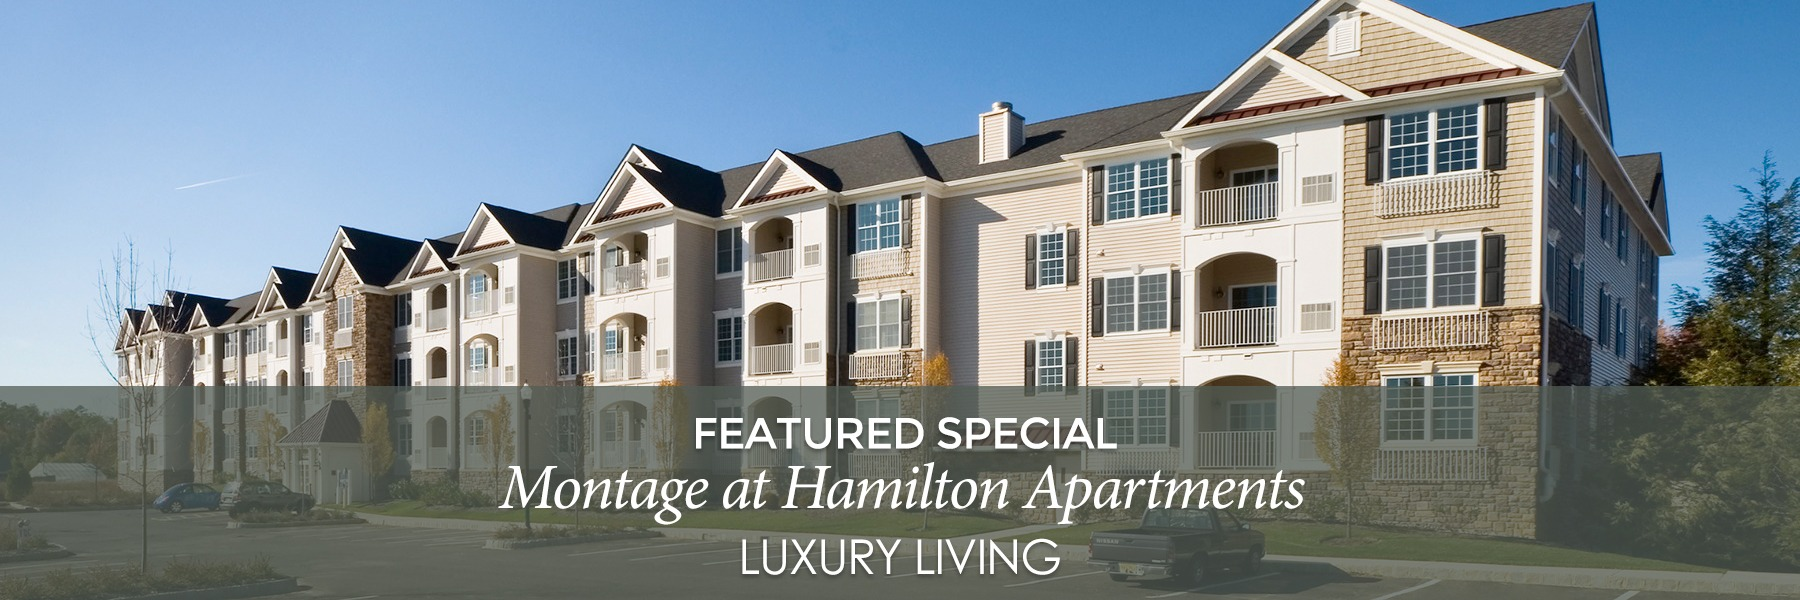 Montage At Hamilton Apartments For Rent in Hamilton Township, NJ Specials